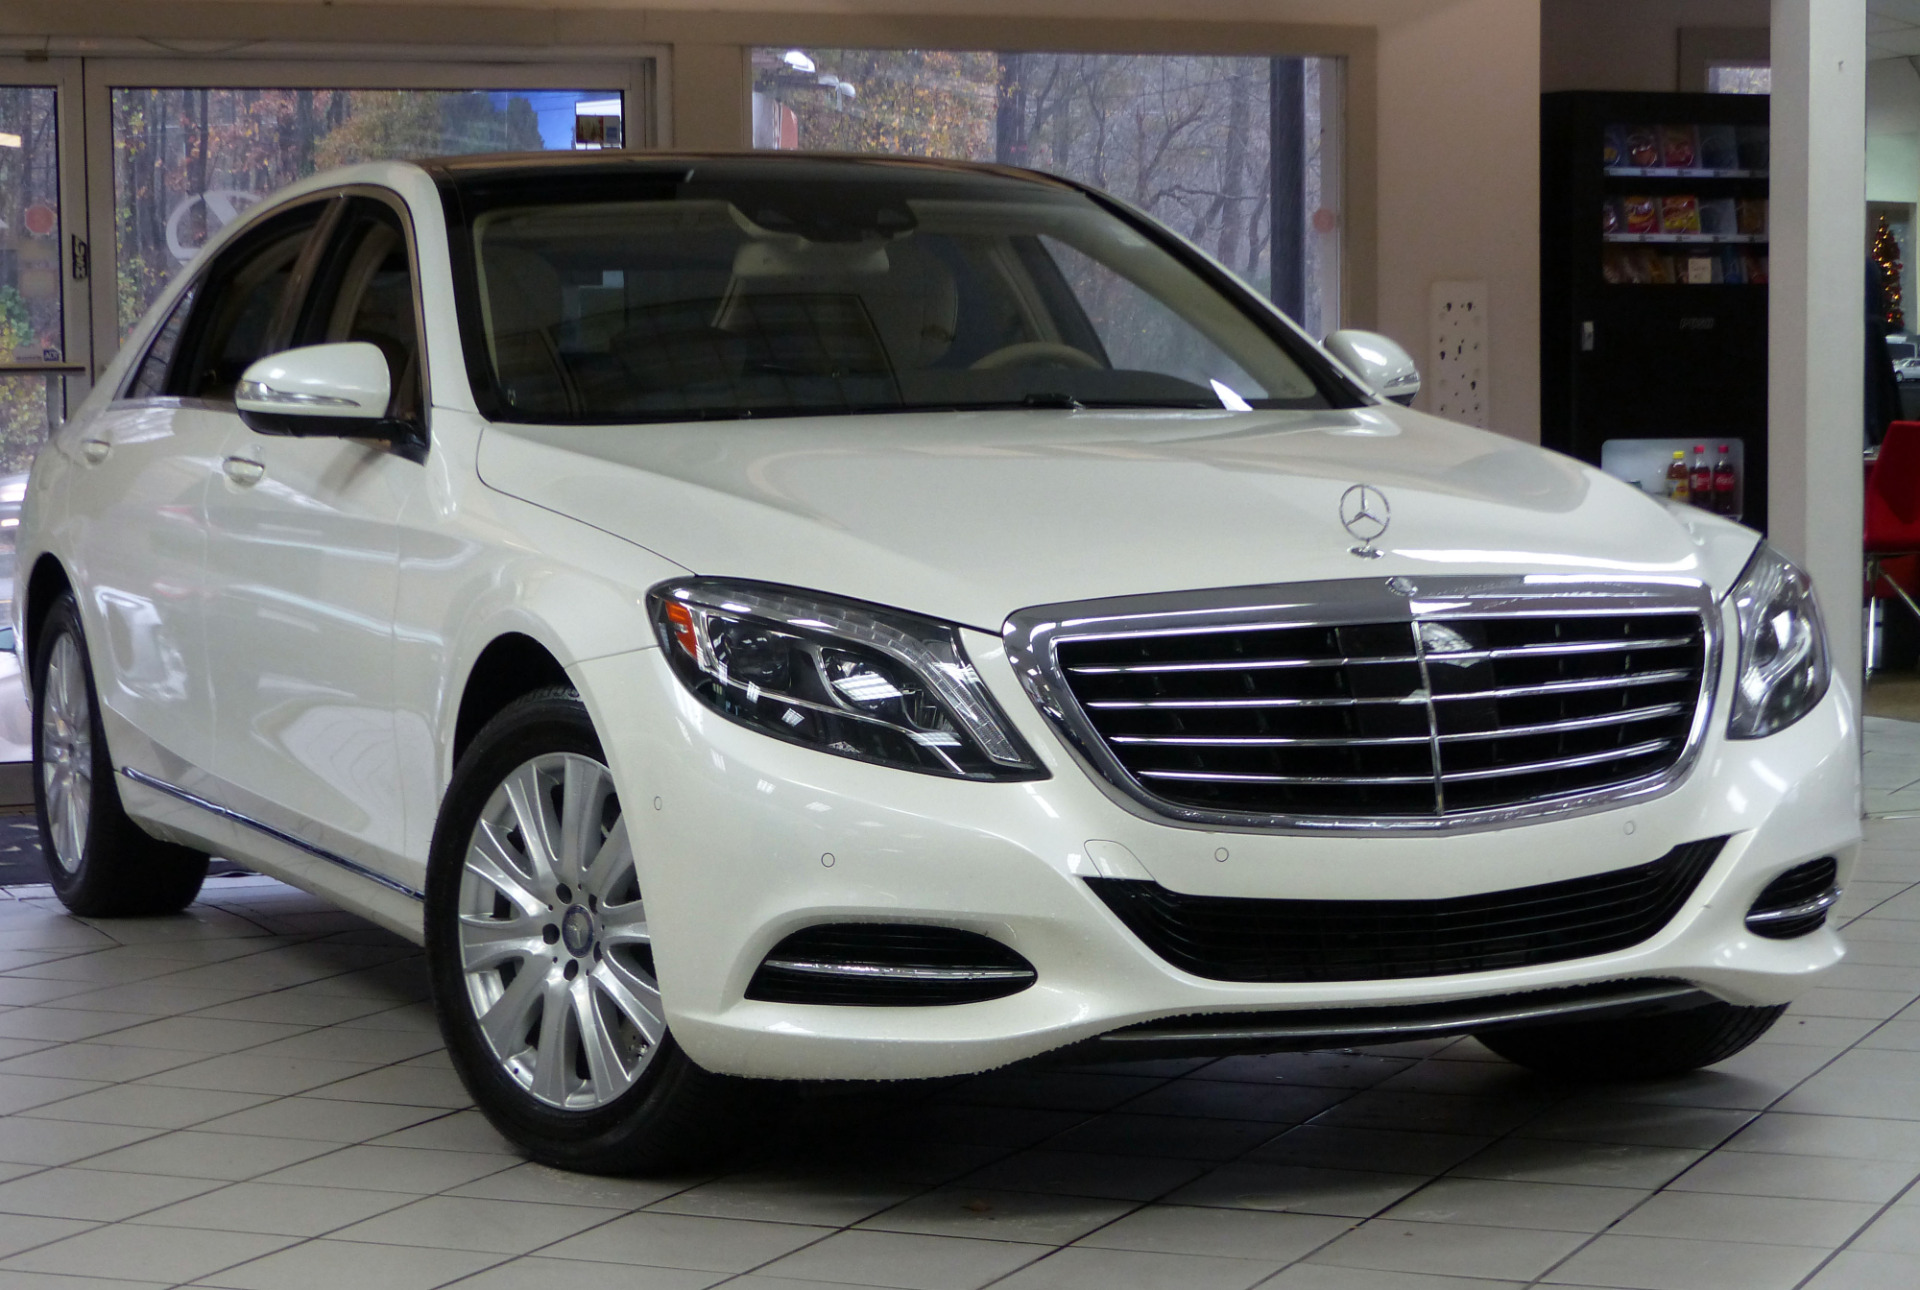 Used 2014 mercedes benz s class s550 marietta ga for Used s class mercedes benz